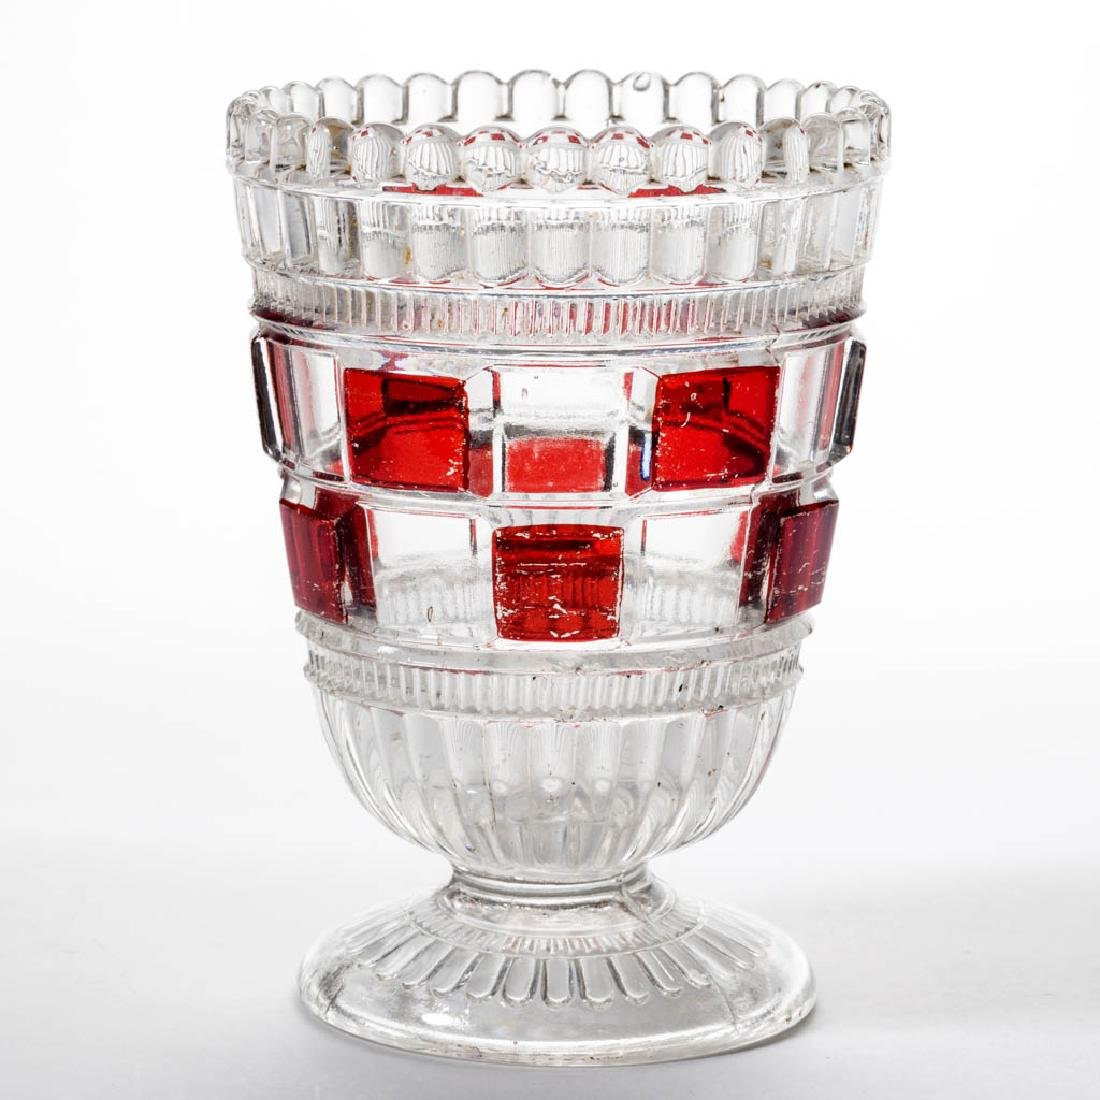 PERSIAN / BLOCK AND PLEAT - RUBY-STAINED SPOONER